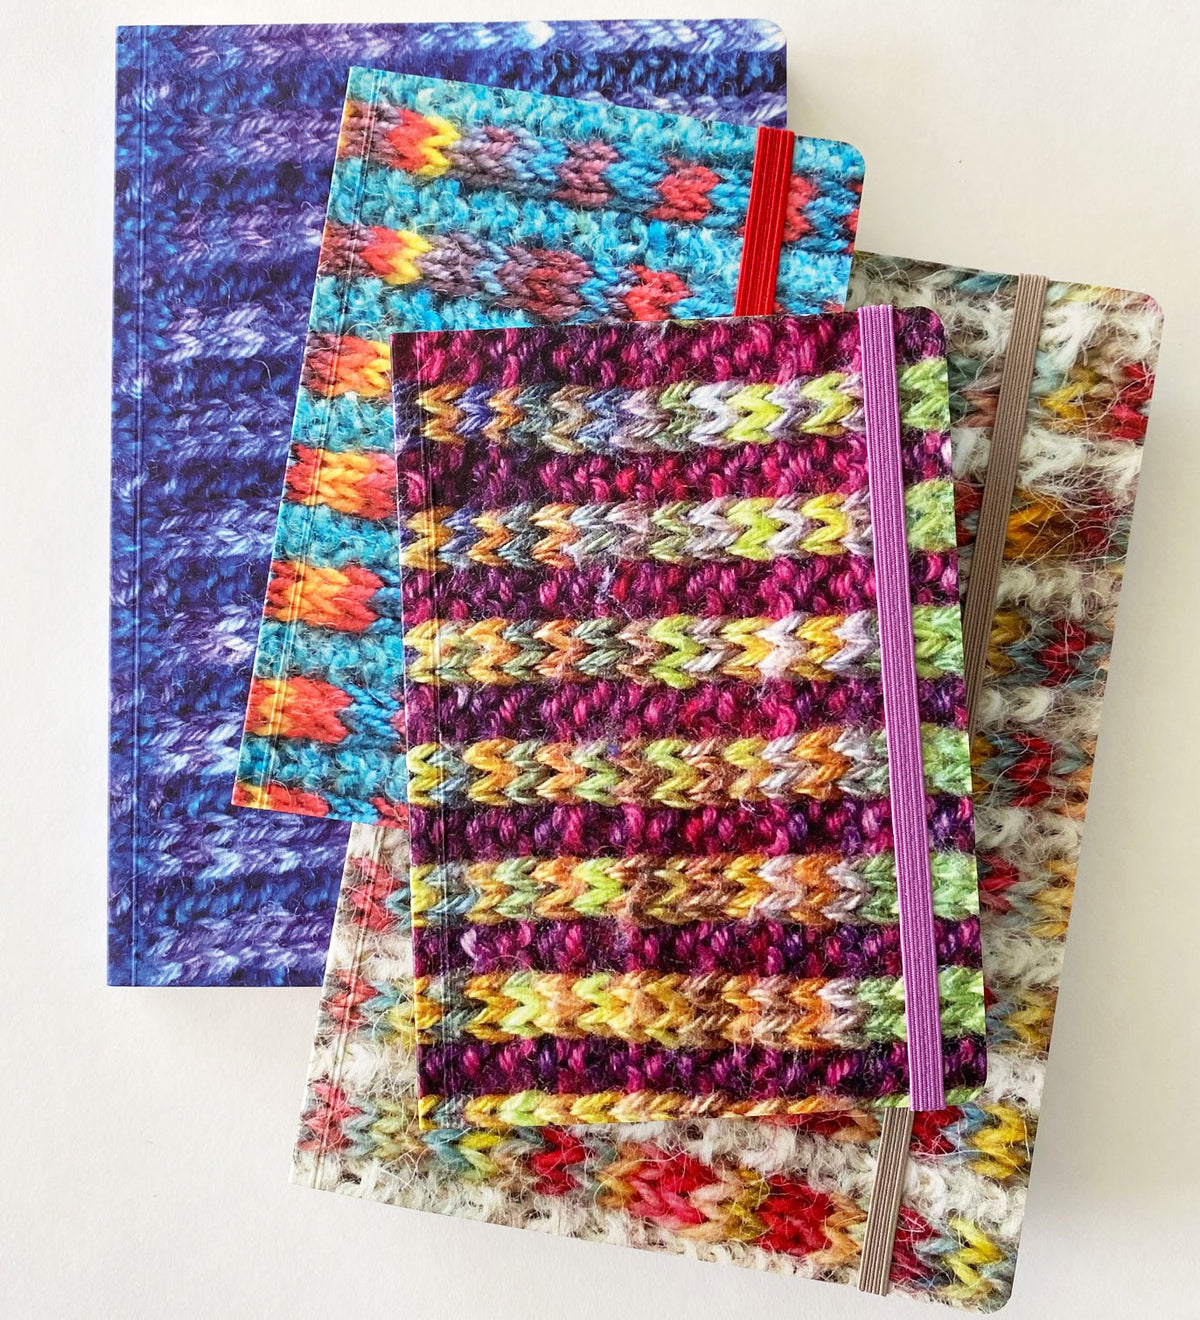 'Knitted' Notebooks